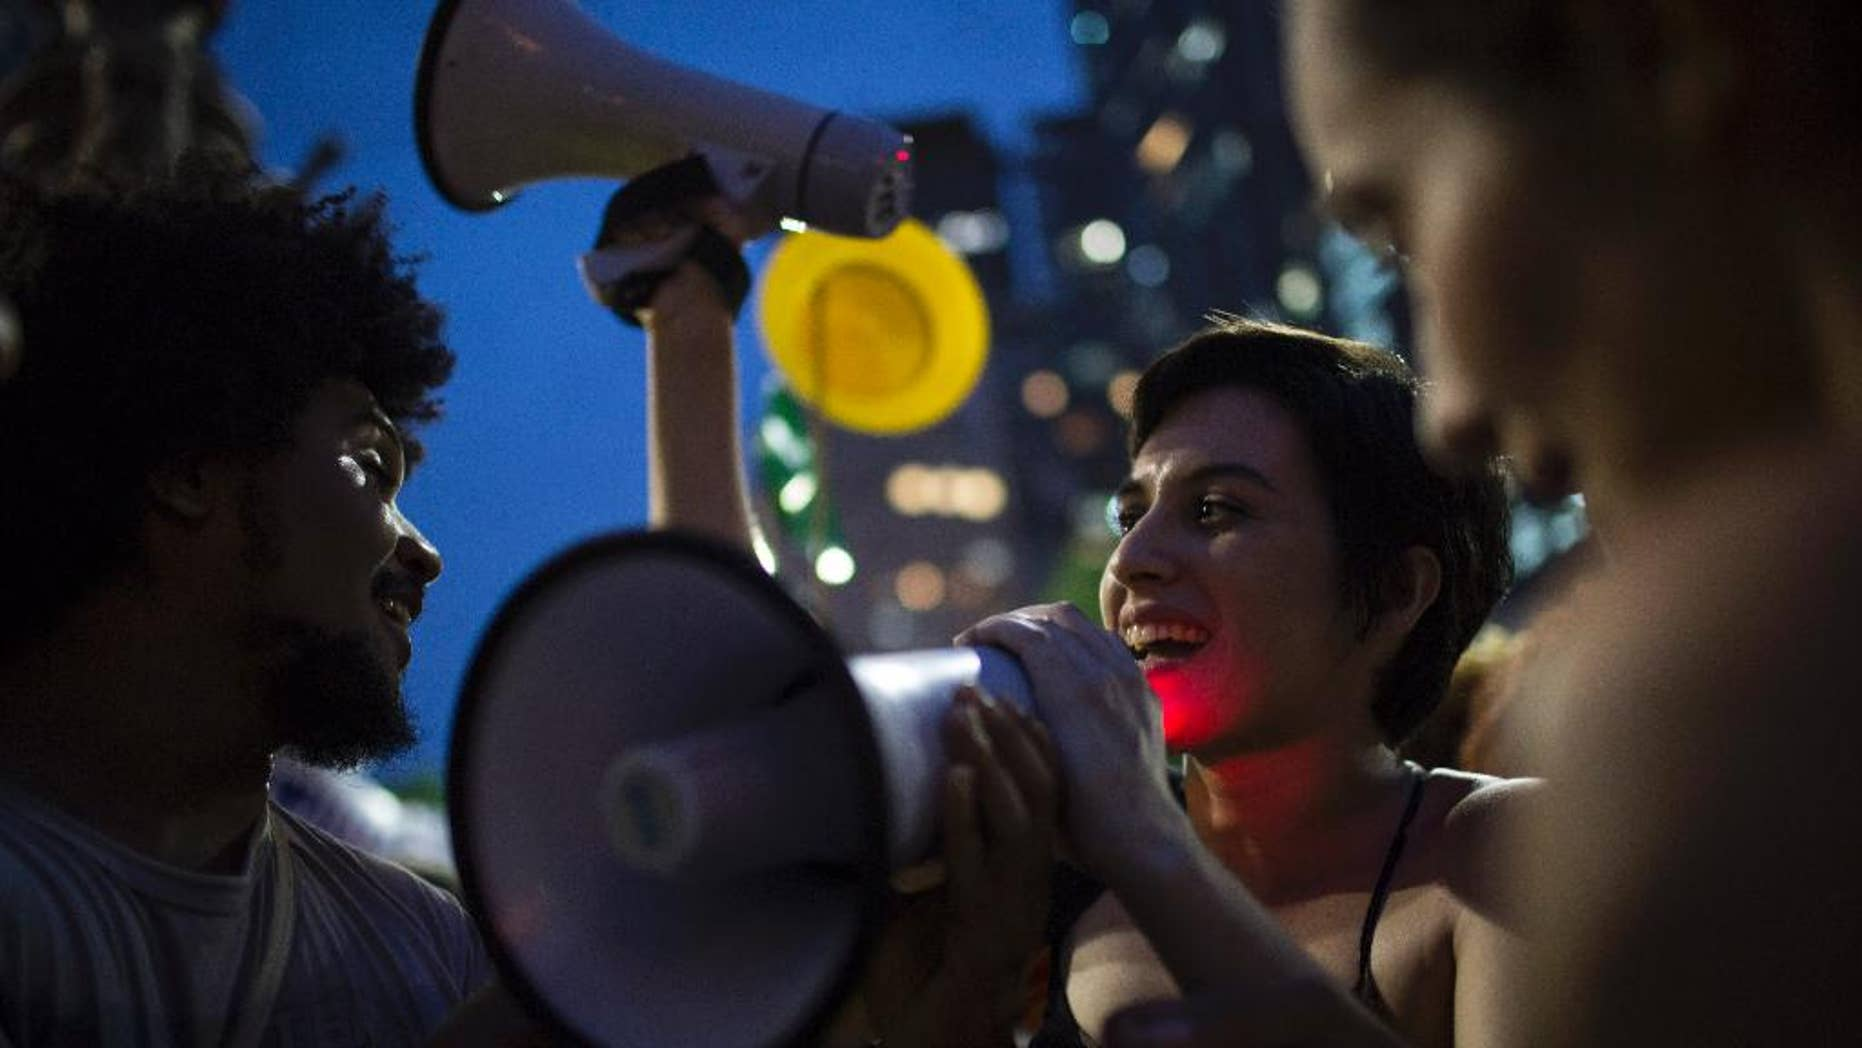 Demonstrators chant slogans during a march in support of Brazil's President Dilma Rousseff and former President Luiz Inacio Lula da Silva in Rio de Janeiro, Brazil, Thursday, March 31, 2016. Rousseff is currently facing impeachment proceedings as her government faces a stalling national economy and multiple corruption scandals. Lula da Silva has been linked to a sprawling corruption scandal involving Brazilian oil giant Petrobras. (AP Photo/Felipe Dana)